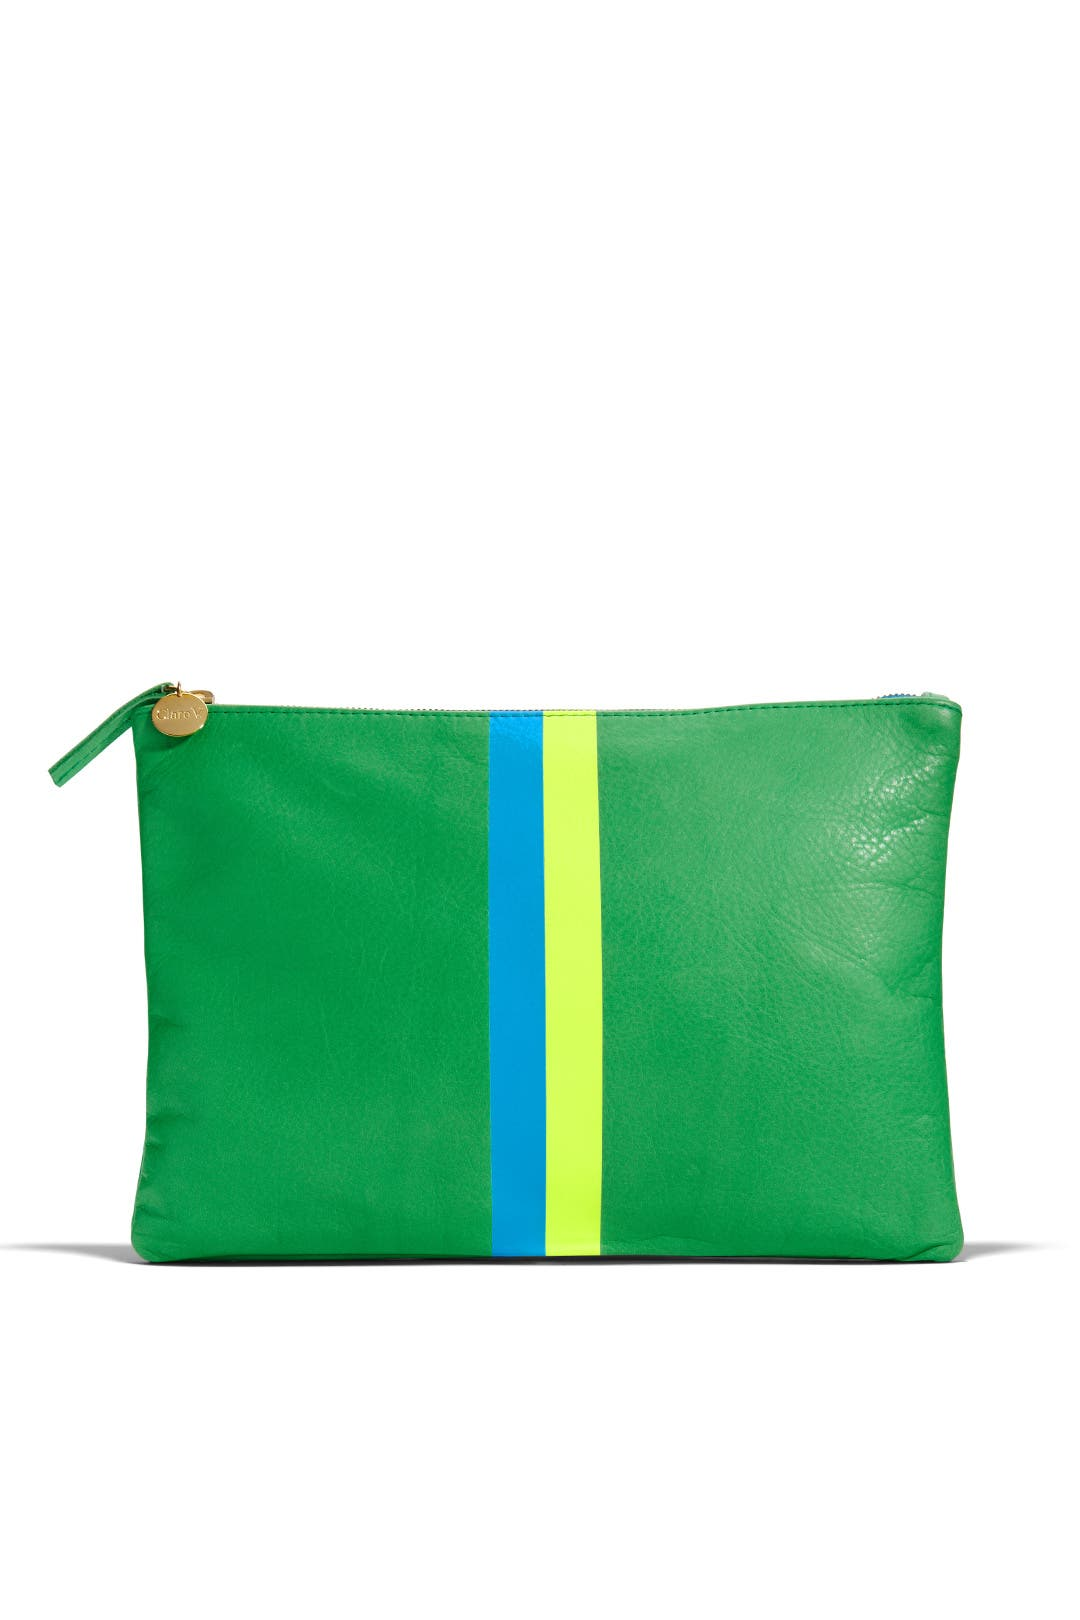 Sour Apple Clutch by Clare V.